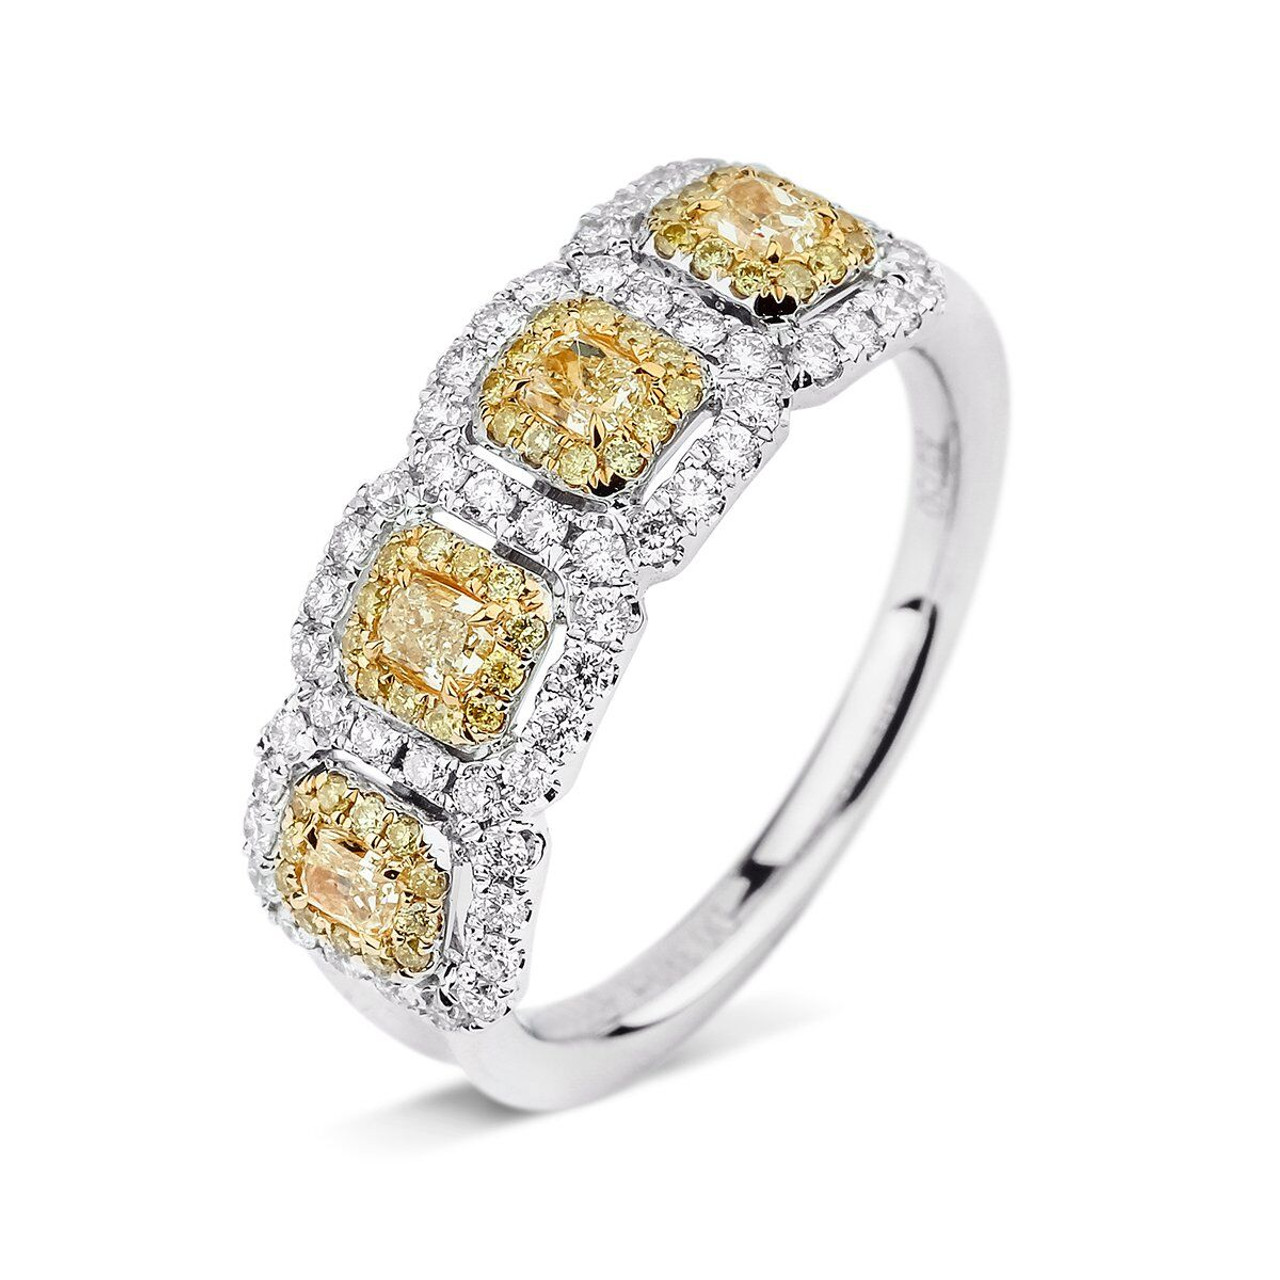 eternity wedding bands collection diamond stone yellow retail diamonds ring band gold online